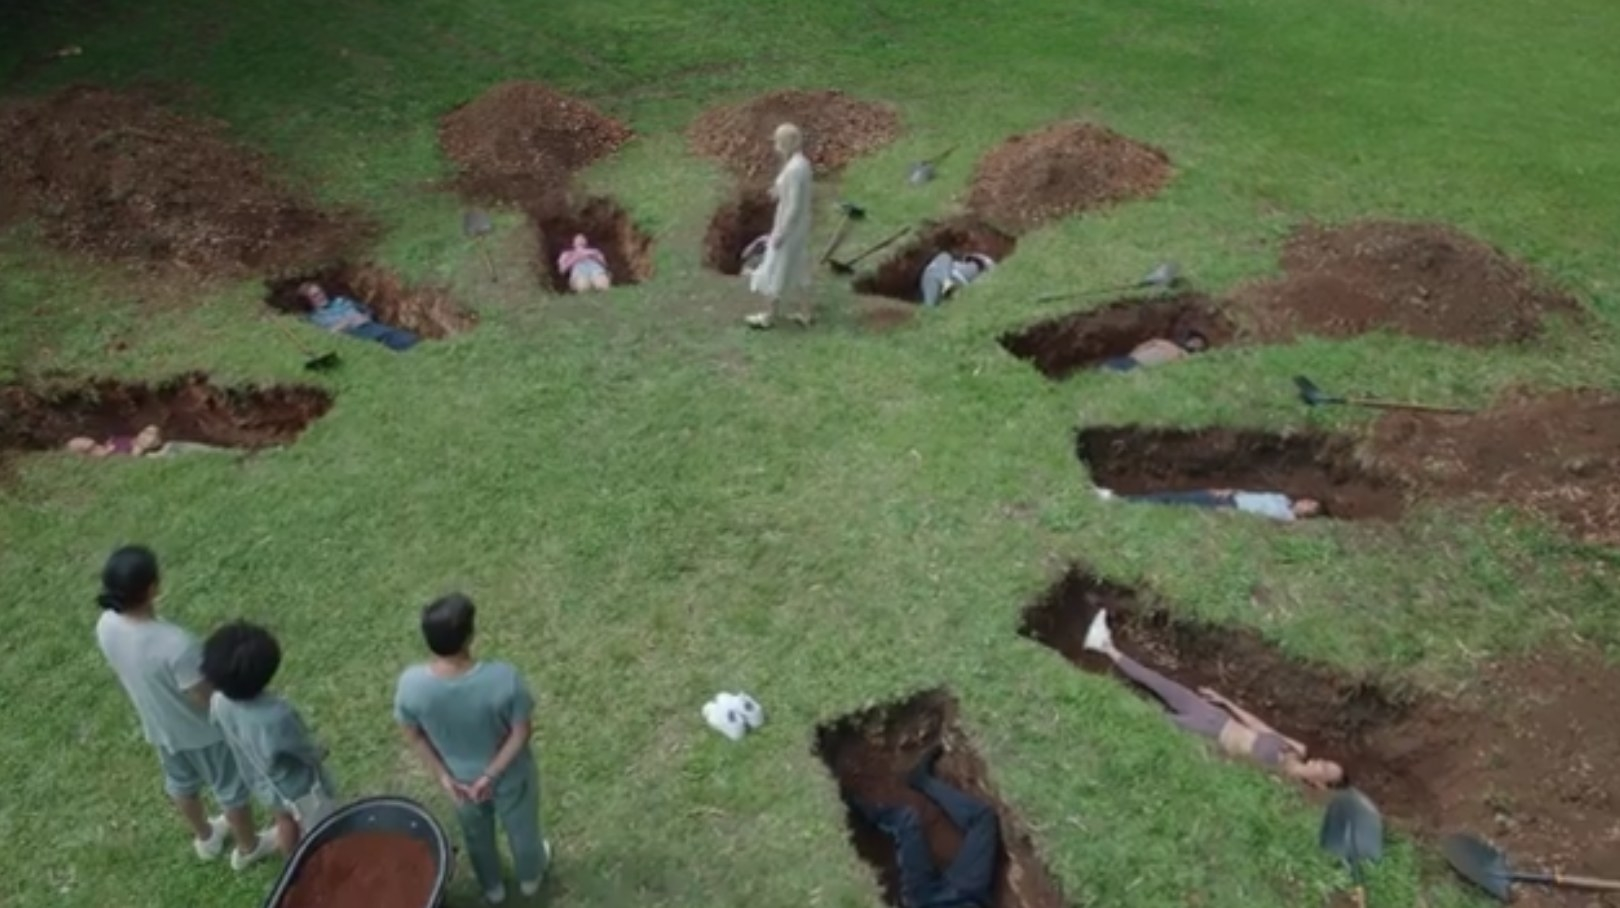 The guests lay in open graves set out in a circle while Tranquillum staff stand above them